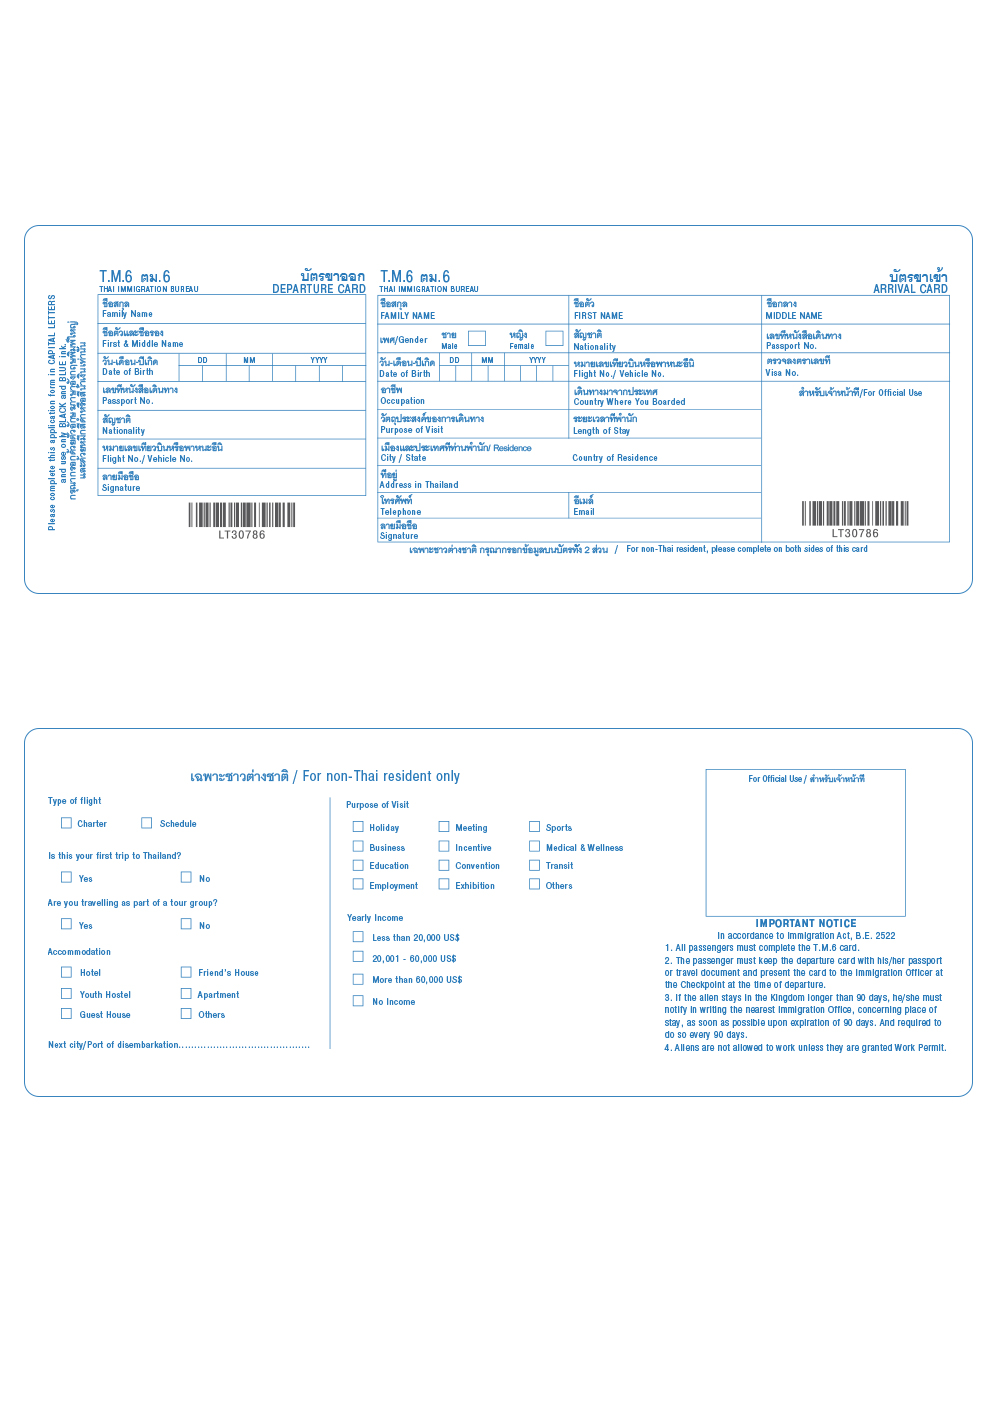 Sample of Immigration Card